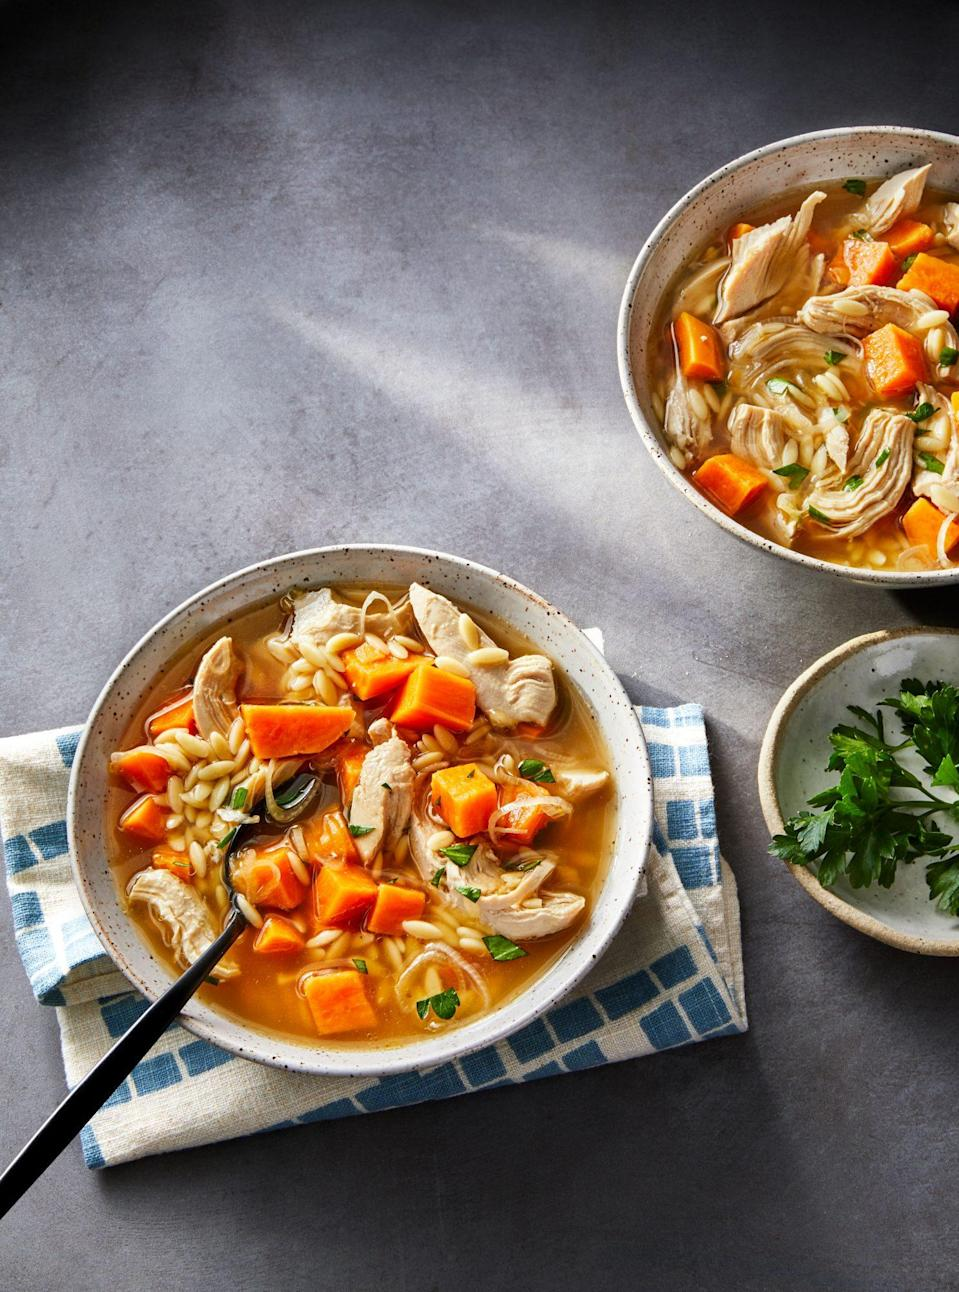 "<p><strong>Recipe: </strong><a href=""https://www.southernliving.com/recipes/lemon-chicken-orzo-soup"" rel=""nofollow noopener"" target=""_blank"" data-ylk=""slk:Lemon Chicken Orzo Soup"" class=""link rapid-noclick-resp""><strong>Lemon Chicken Orzo Soup</strong></a></p> <p>Regardless the season, a warm bowl of chicken soup is always just what the doctor ordered when you need a little comfort. Our Food Editor shared a few shortcut tips that she's used on this recipe: Swapped out the orzo for farro to add some healthy whole grains (up the cooking time by 15 minutes). Used a shredded rotisserie chicken (you'll need 3 cups of chicken). Substituted fresh thyme for the parsley.</p>"